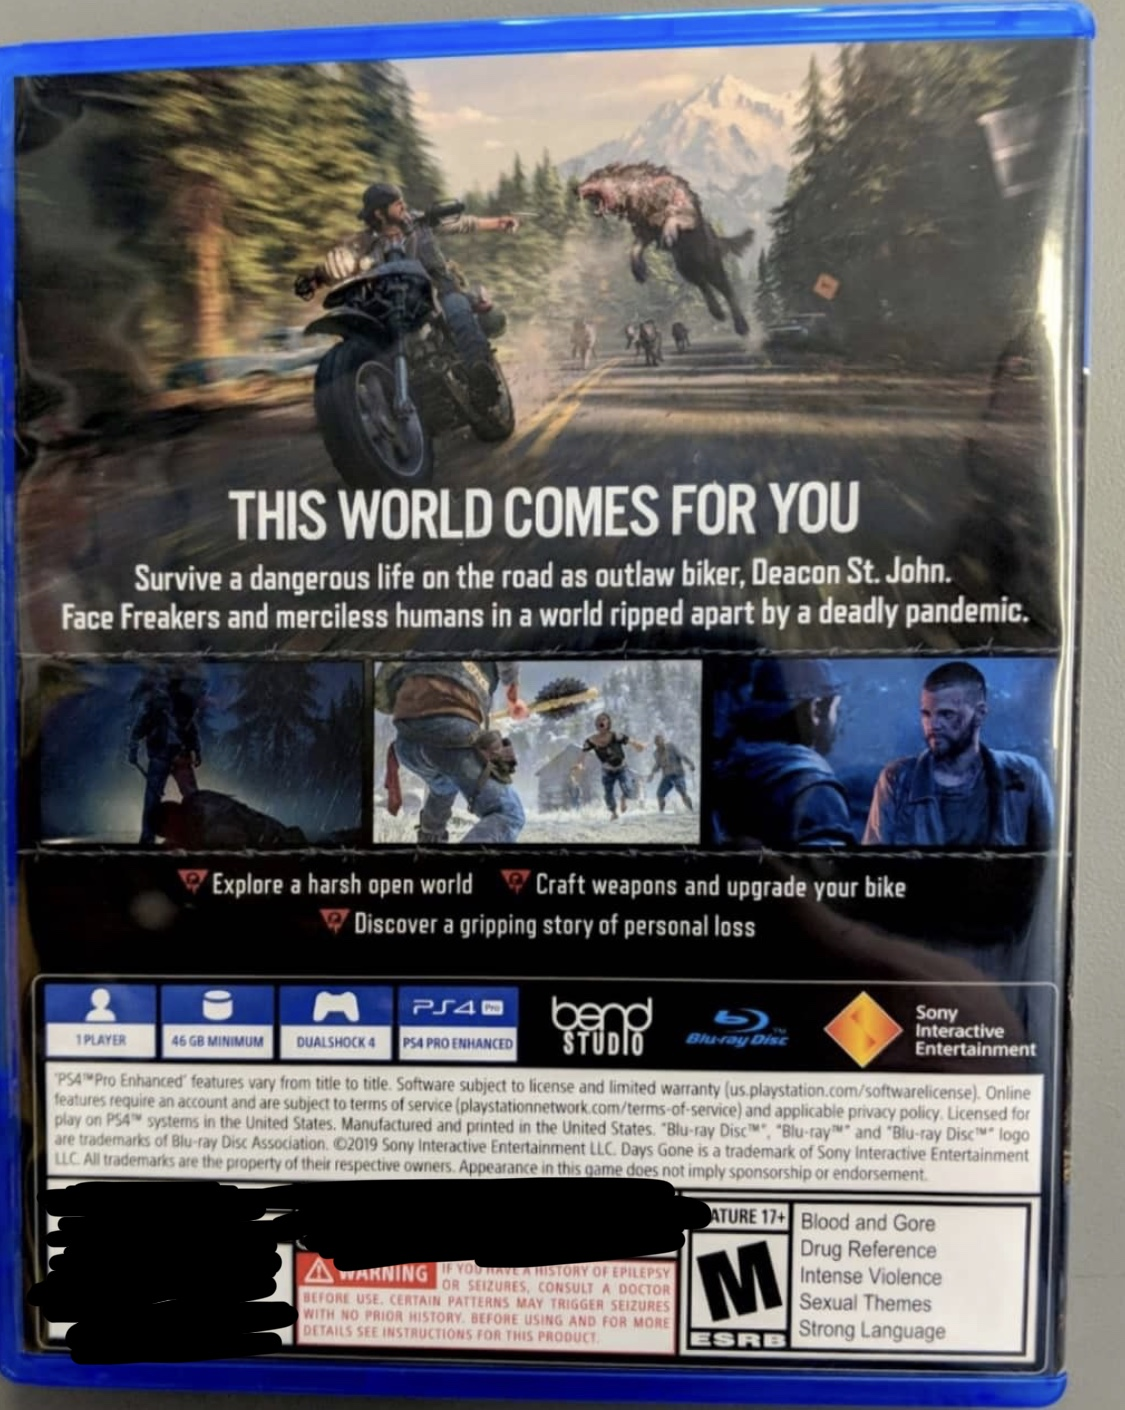 Days Gone Is Just 46 GB On Disc and Playable Without Updates